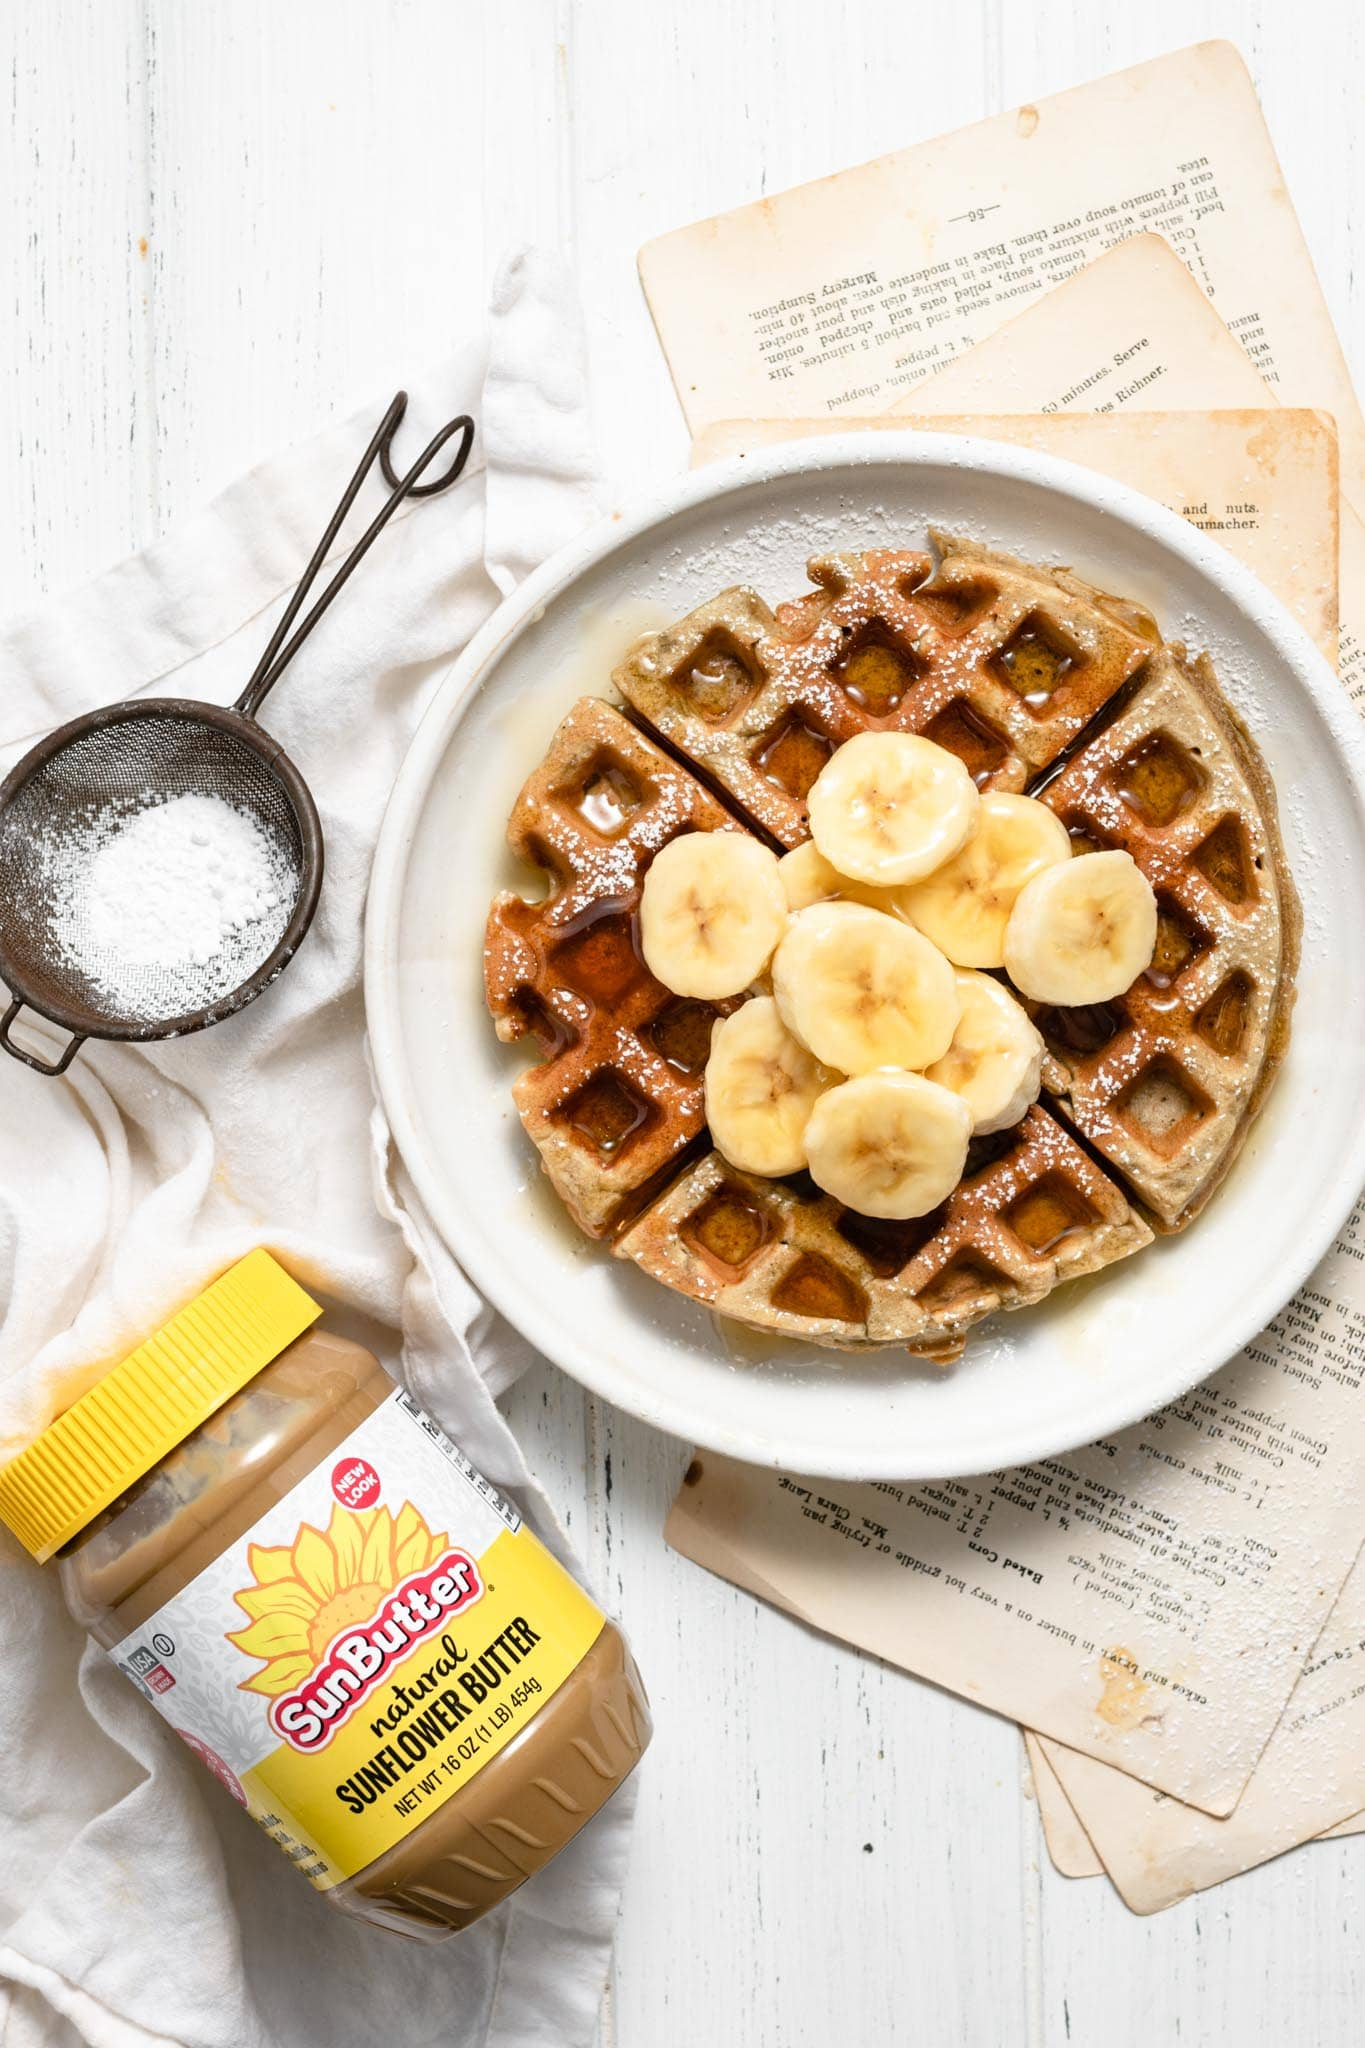 SunButter Sunflower Butter and Banana Waffles with honey.